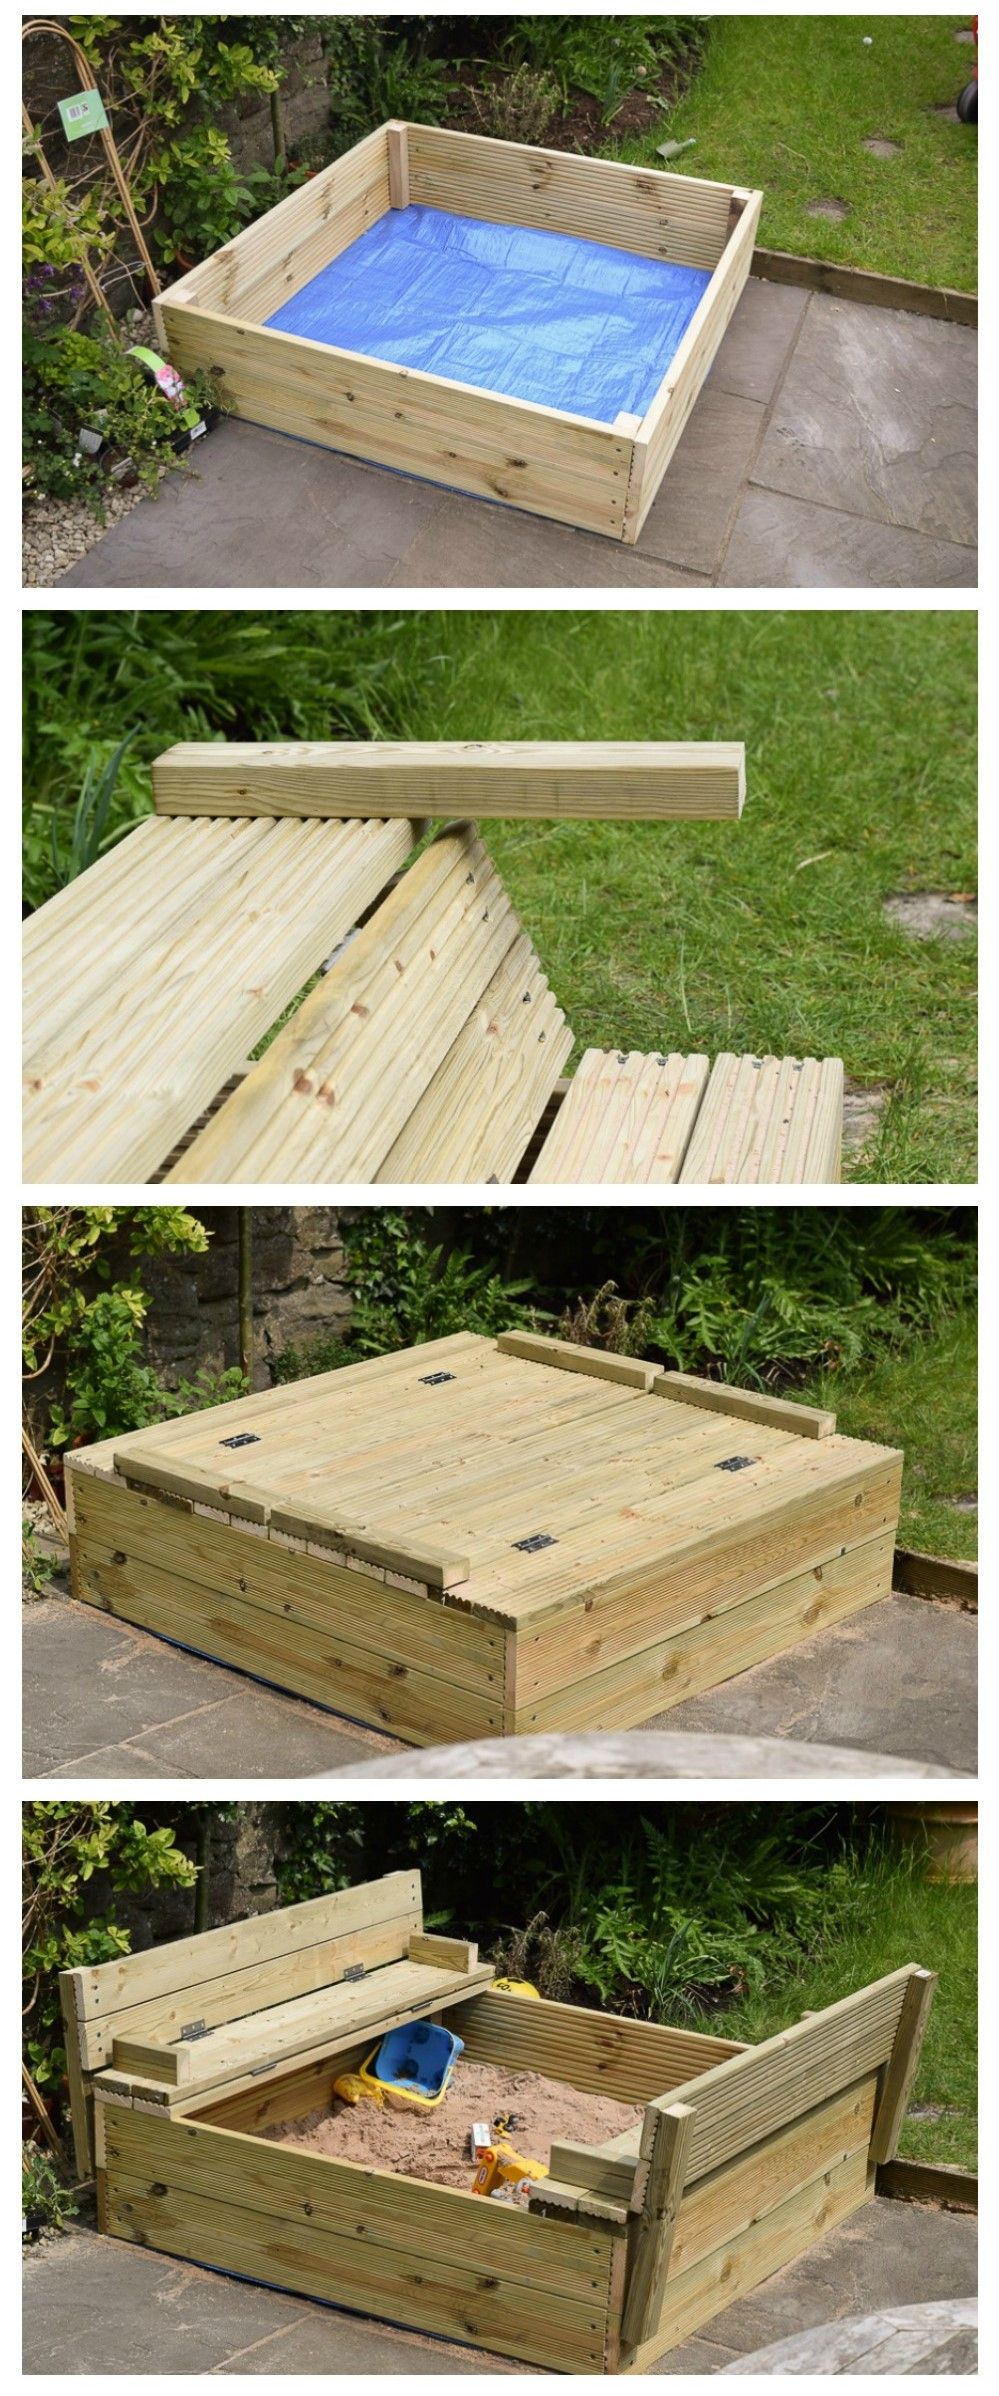 Diy Wooden Sandpit With Lid And Benches